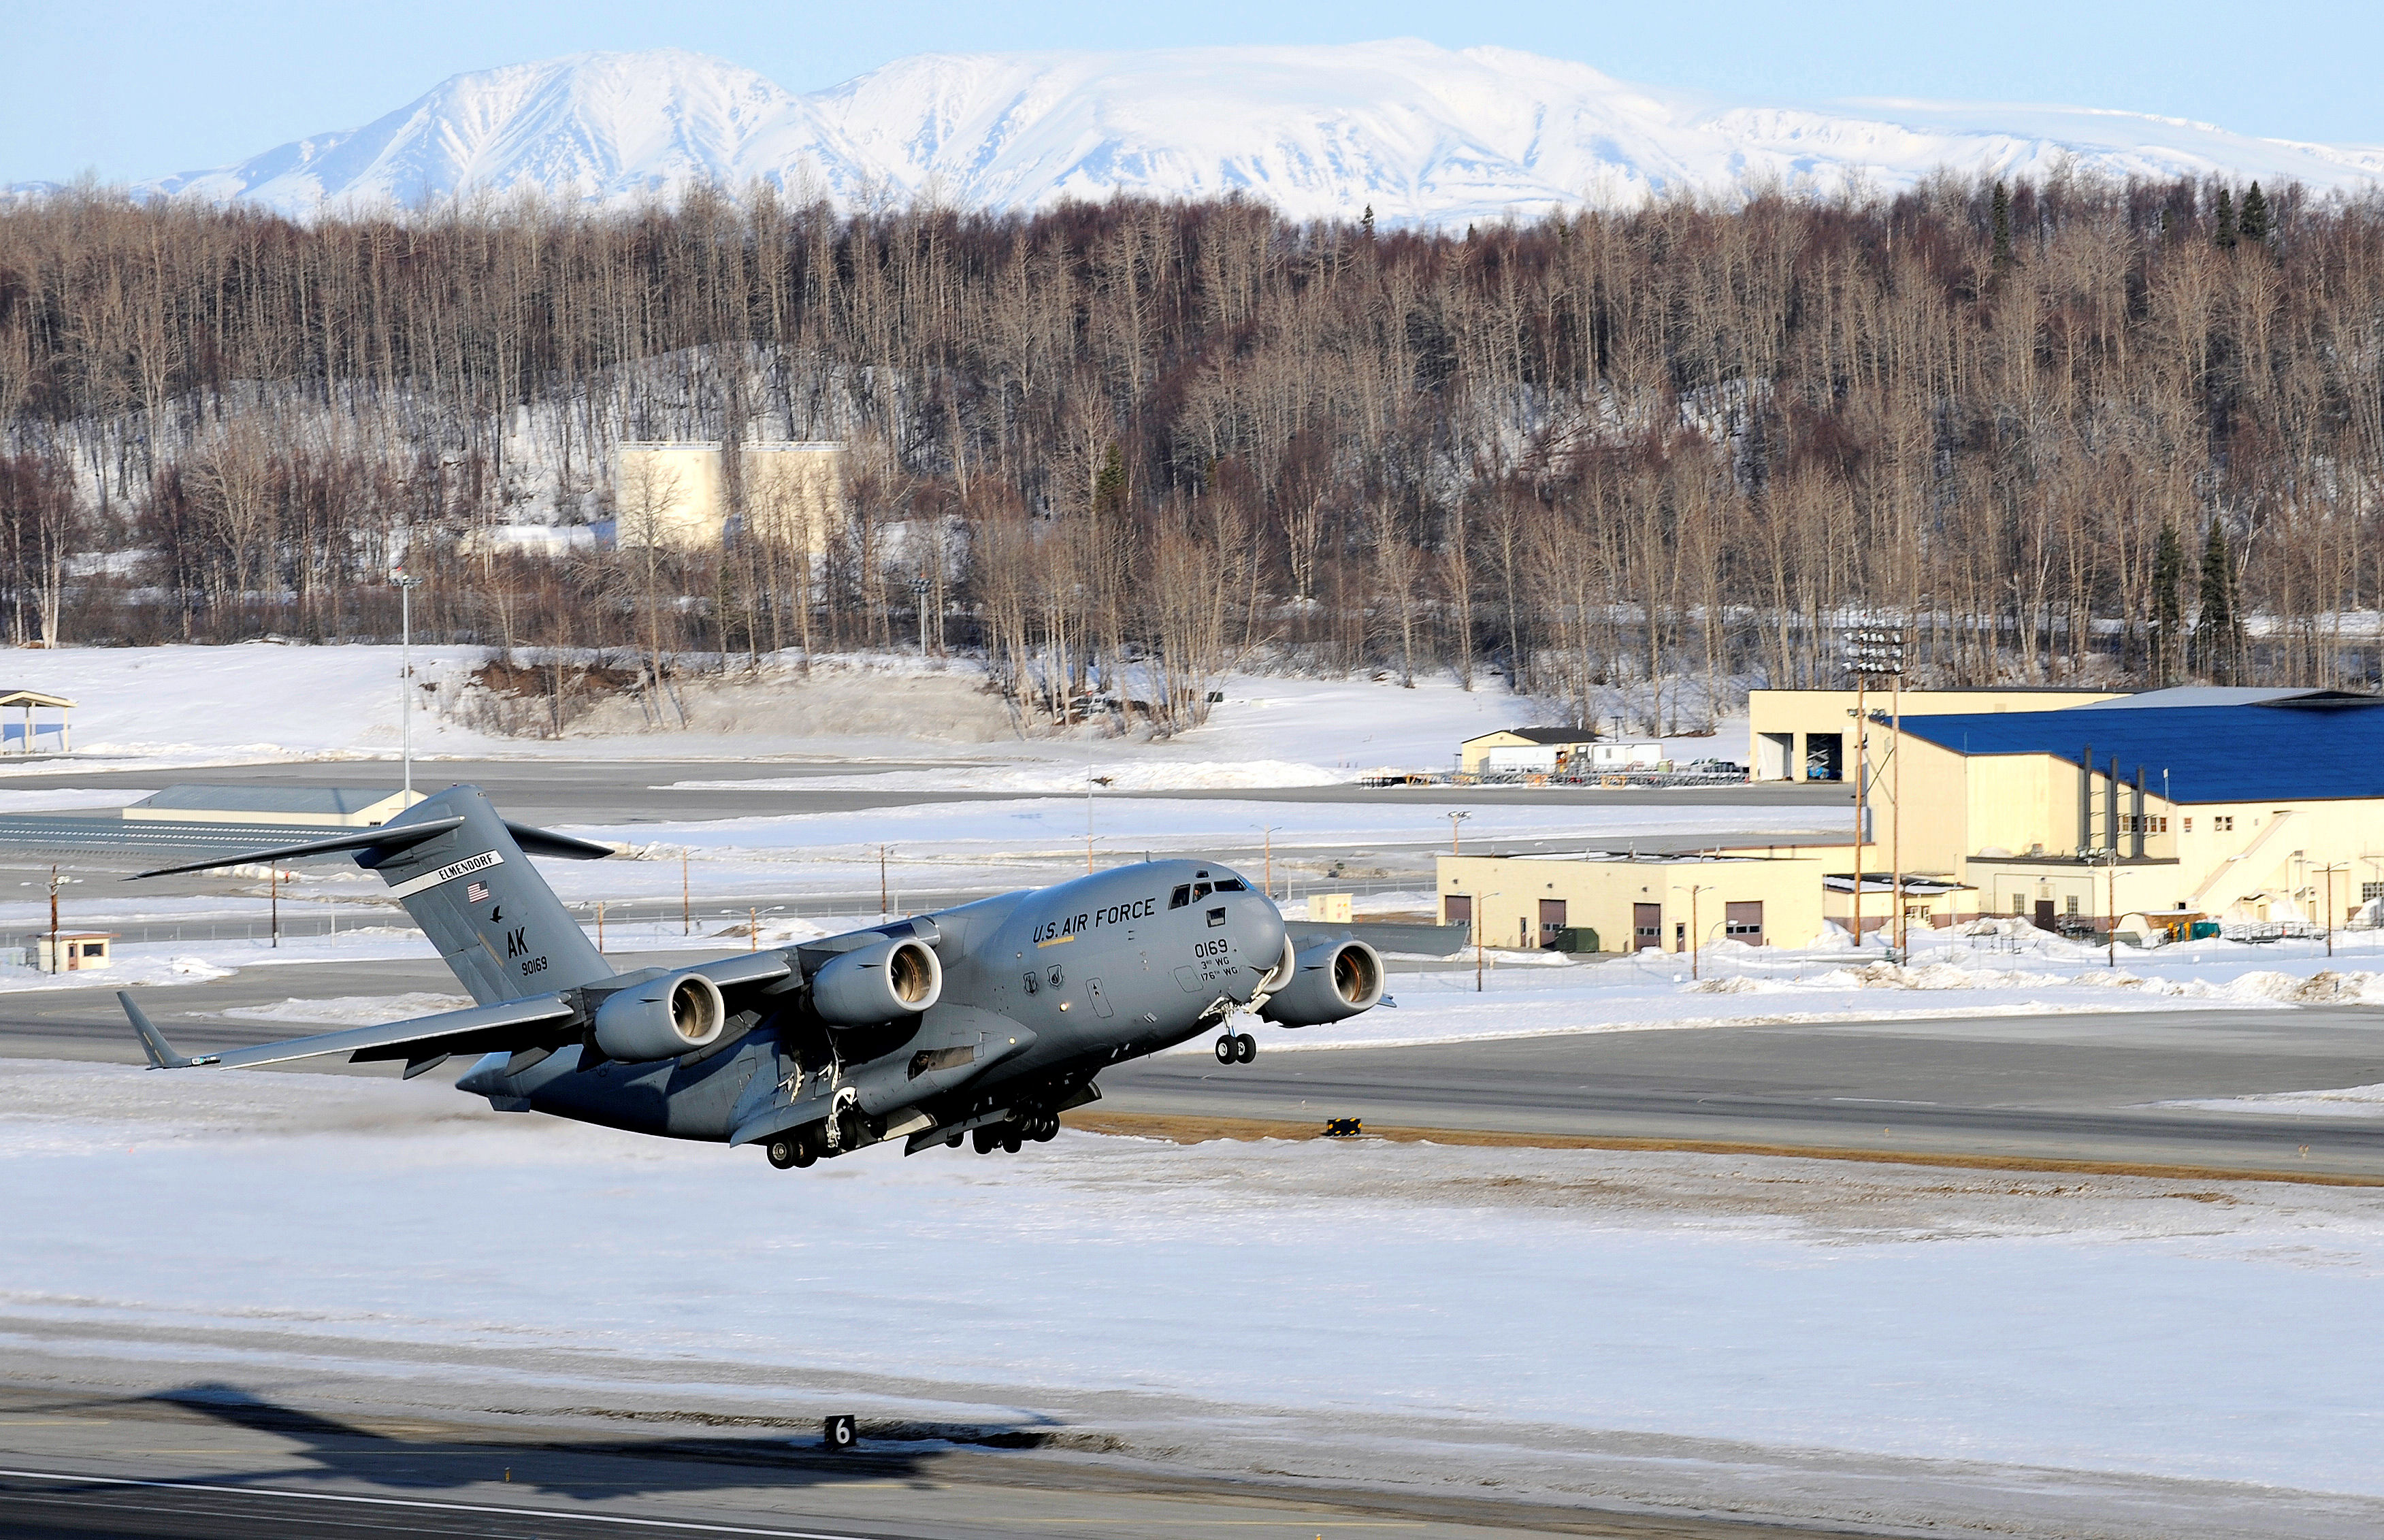 Russia Extends Forces in the Far North-East – Alaska Is in Reach of the Russian Strategic Forces